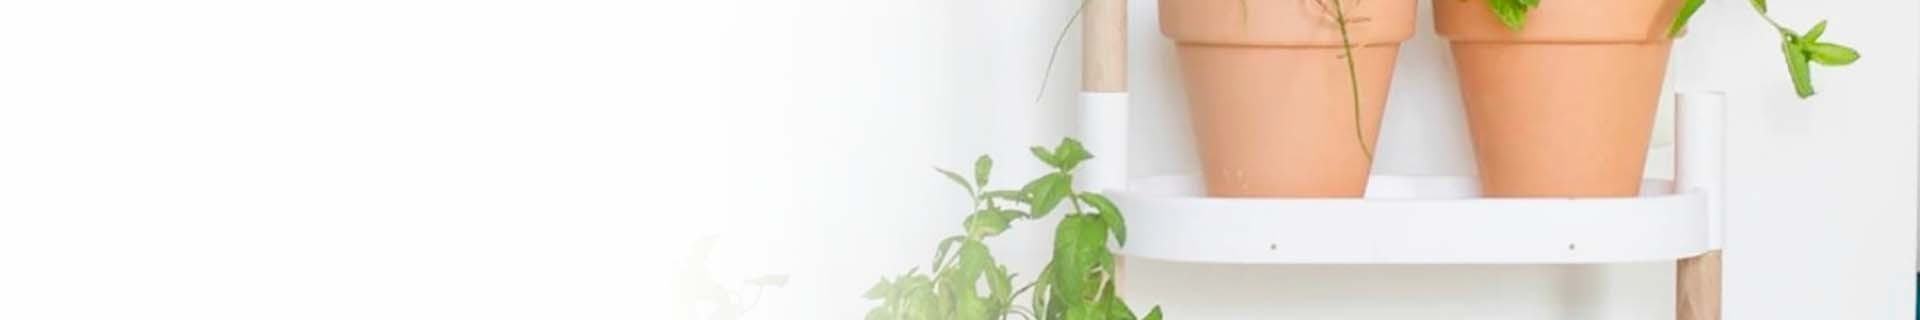 Prestatgeria per plantes amb plantes d'interior decoratives